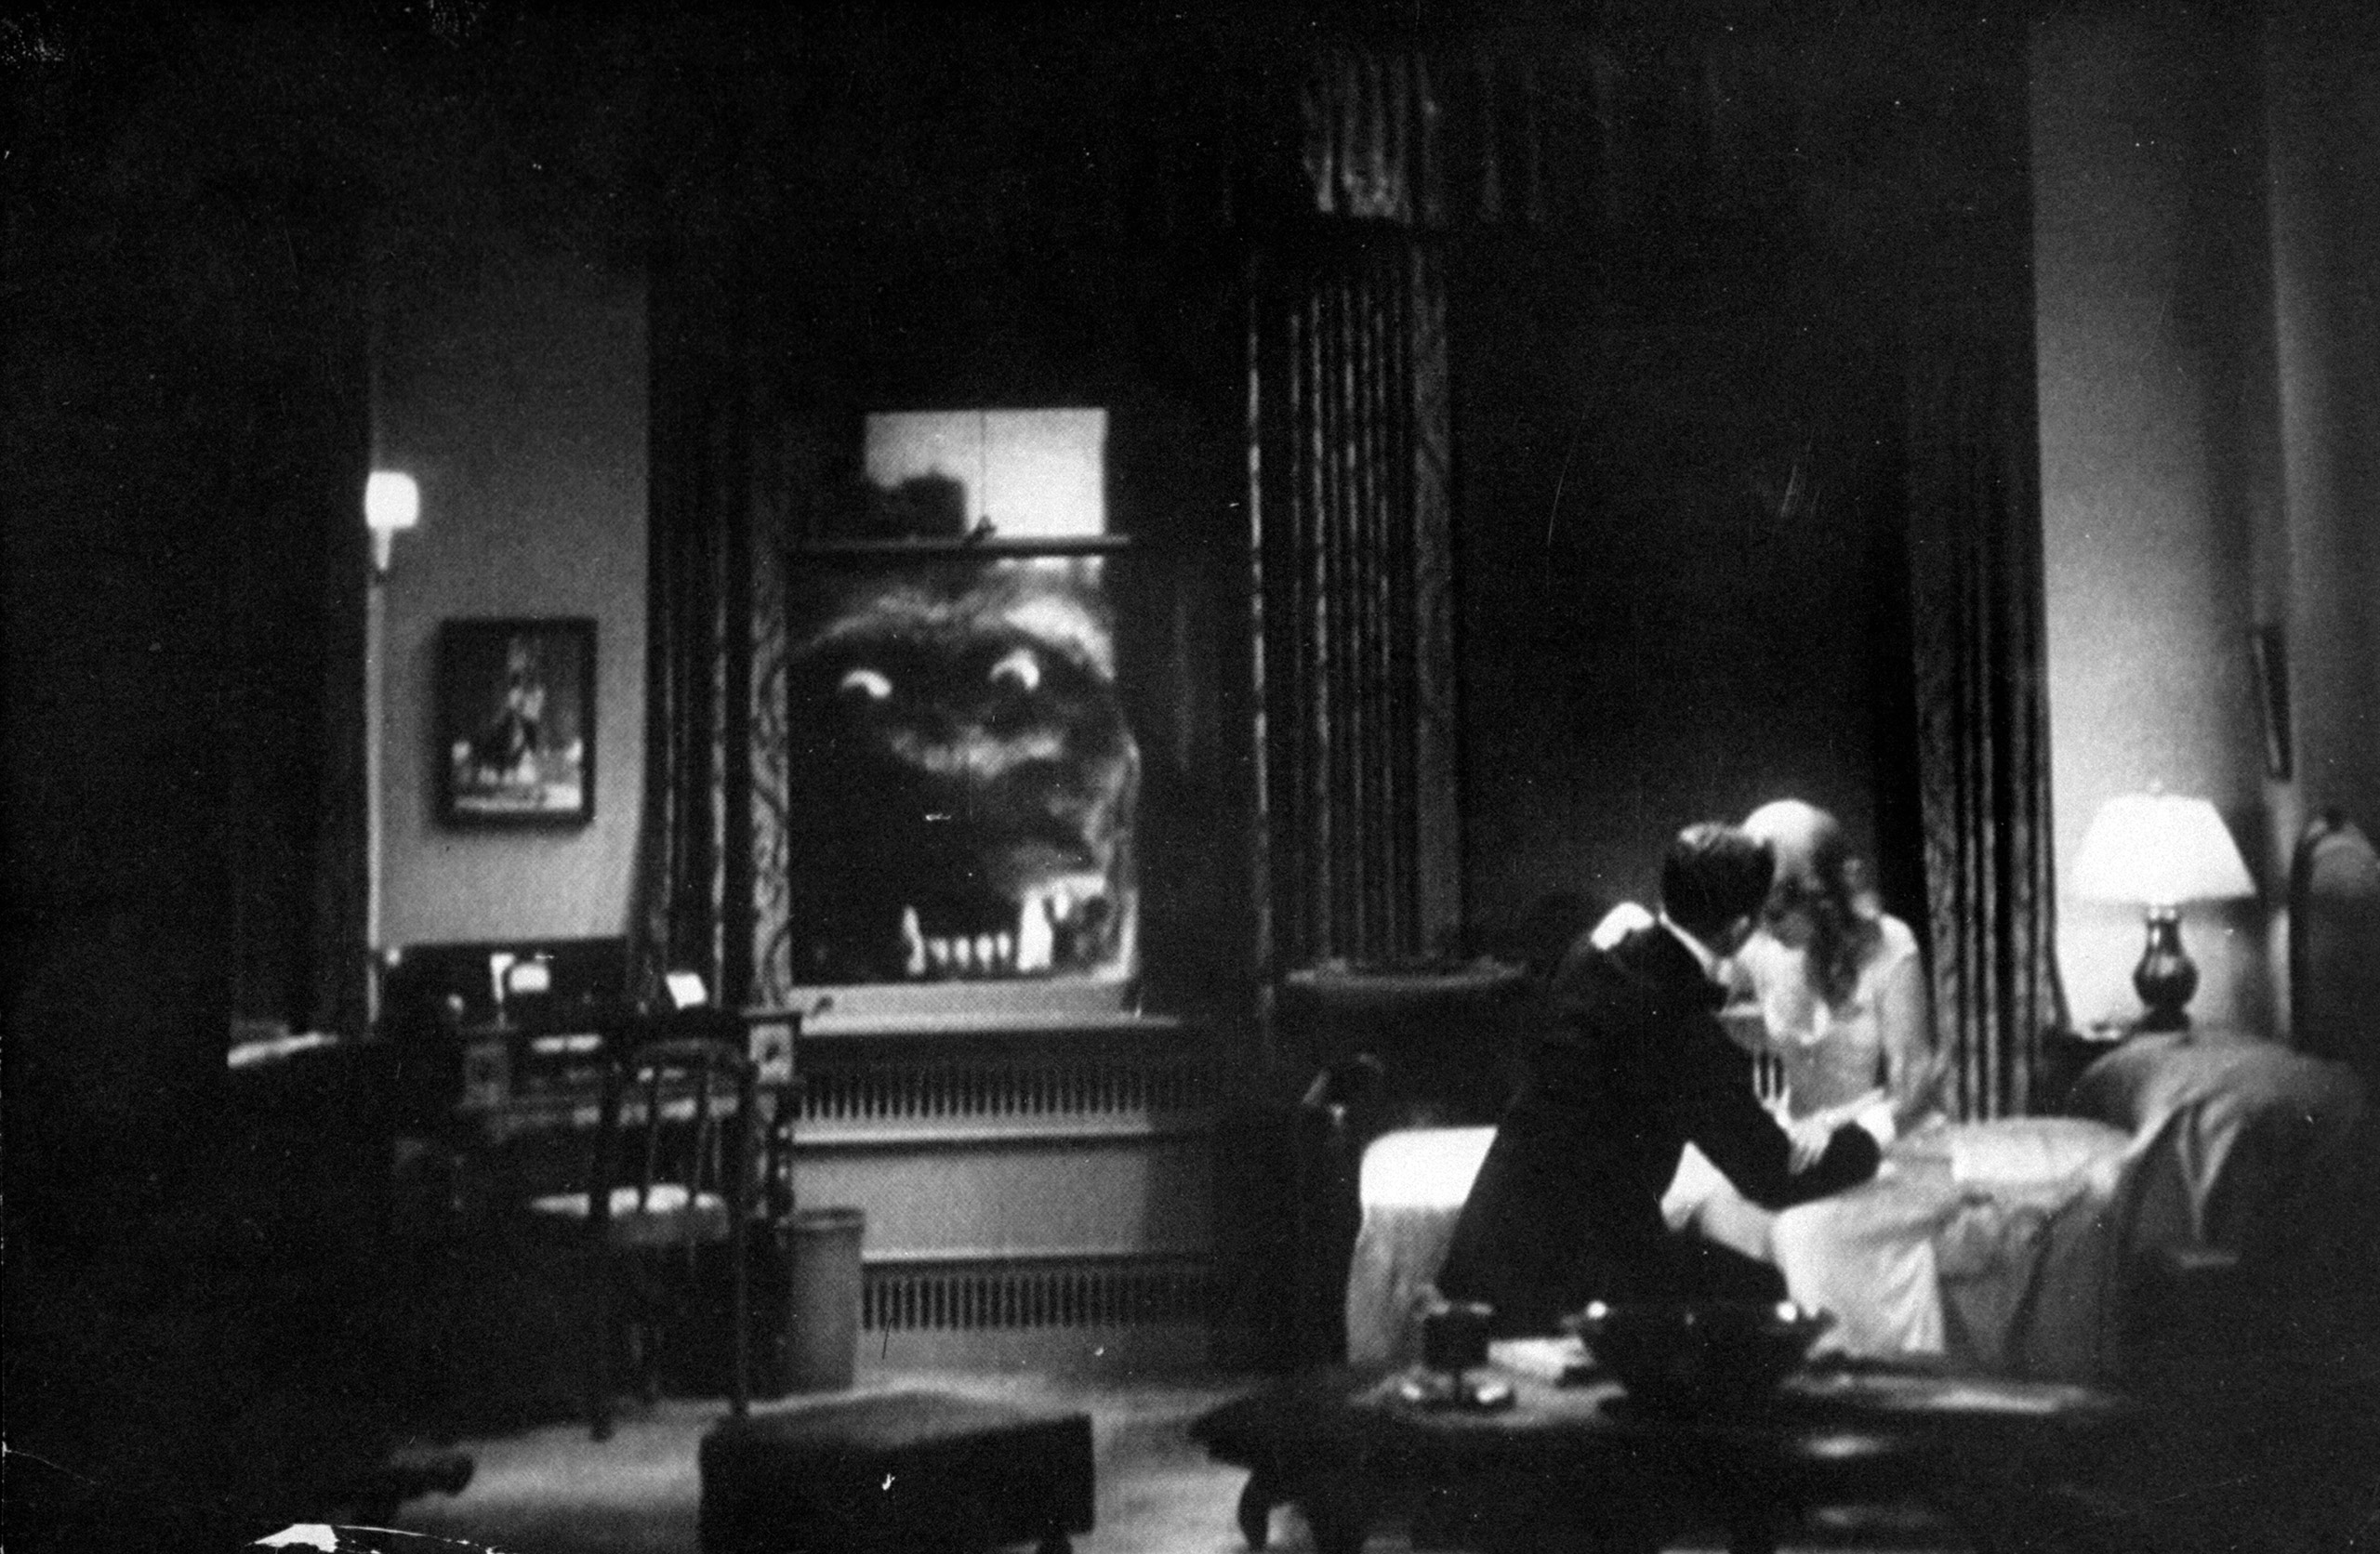 Photo from a 1952 screening of the 1933 film King Kong